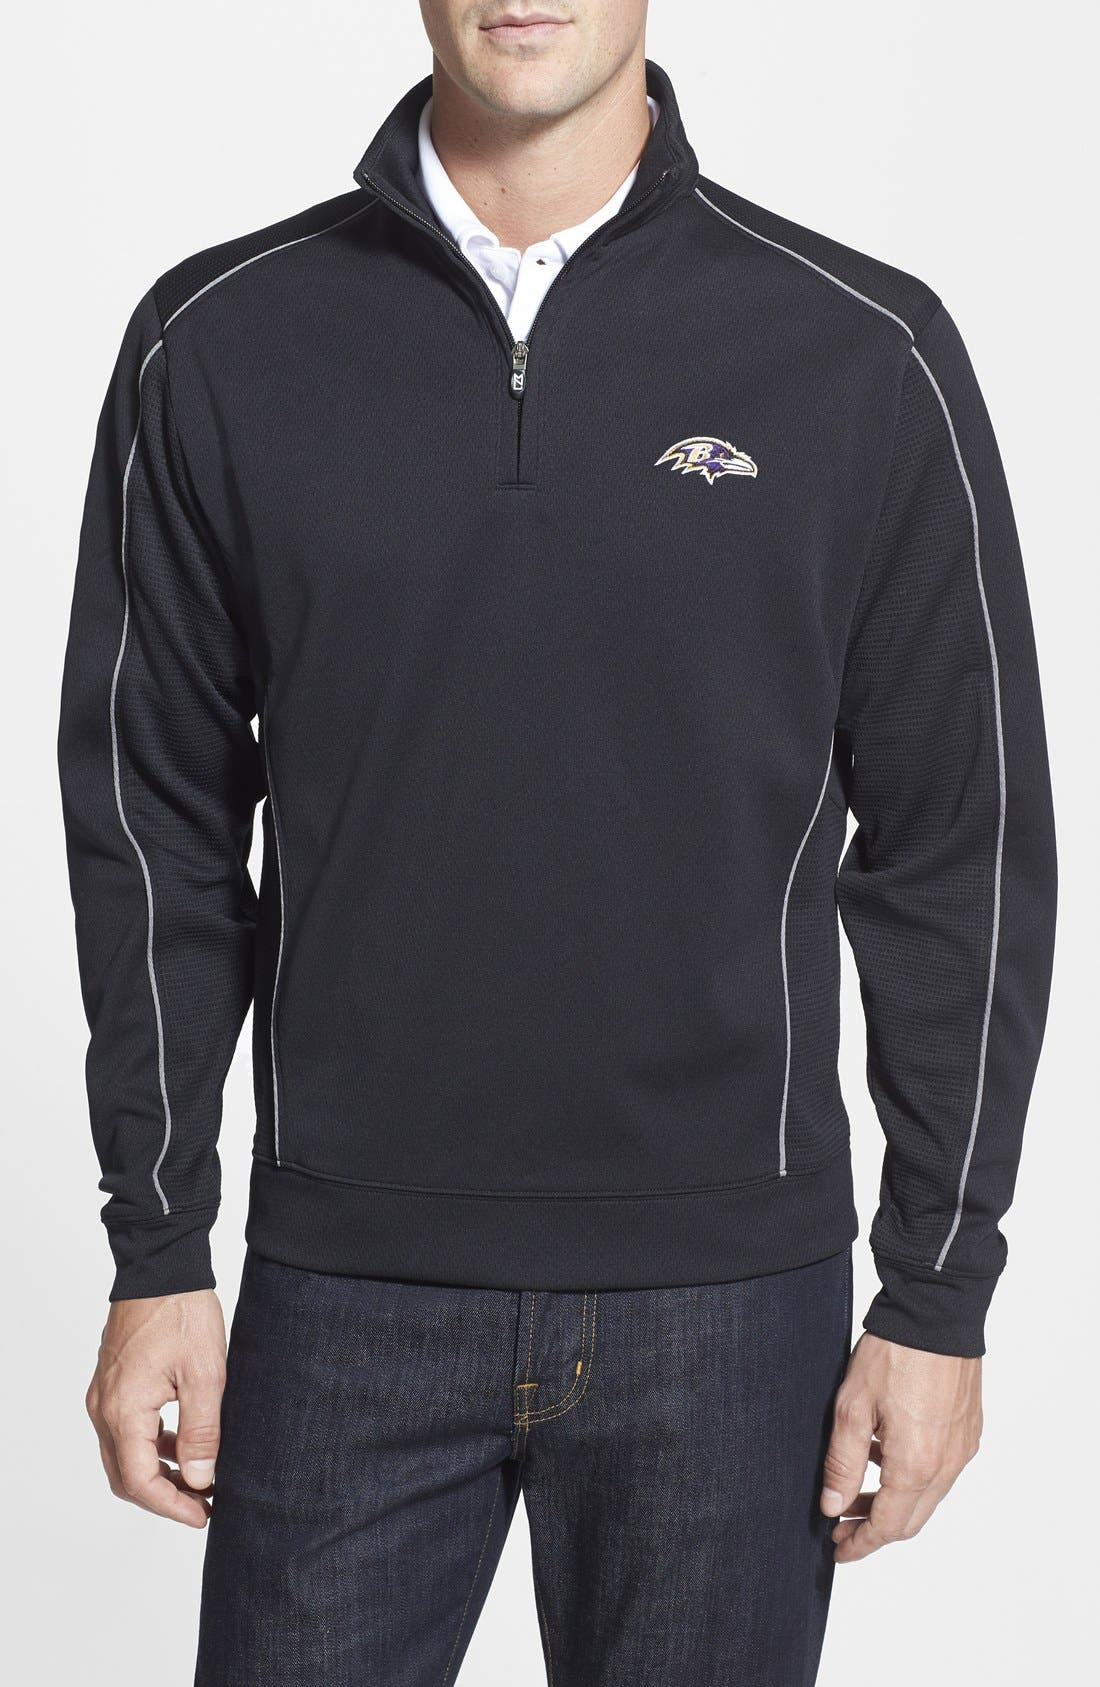 Cutter & Buck 'Baltimore Ravens - Edge' DryTec Moisture Wicking Half Zip Pullover (Big & Tall)